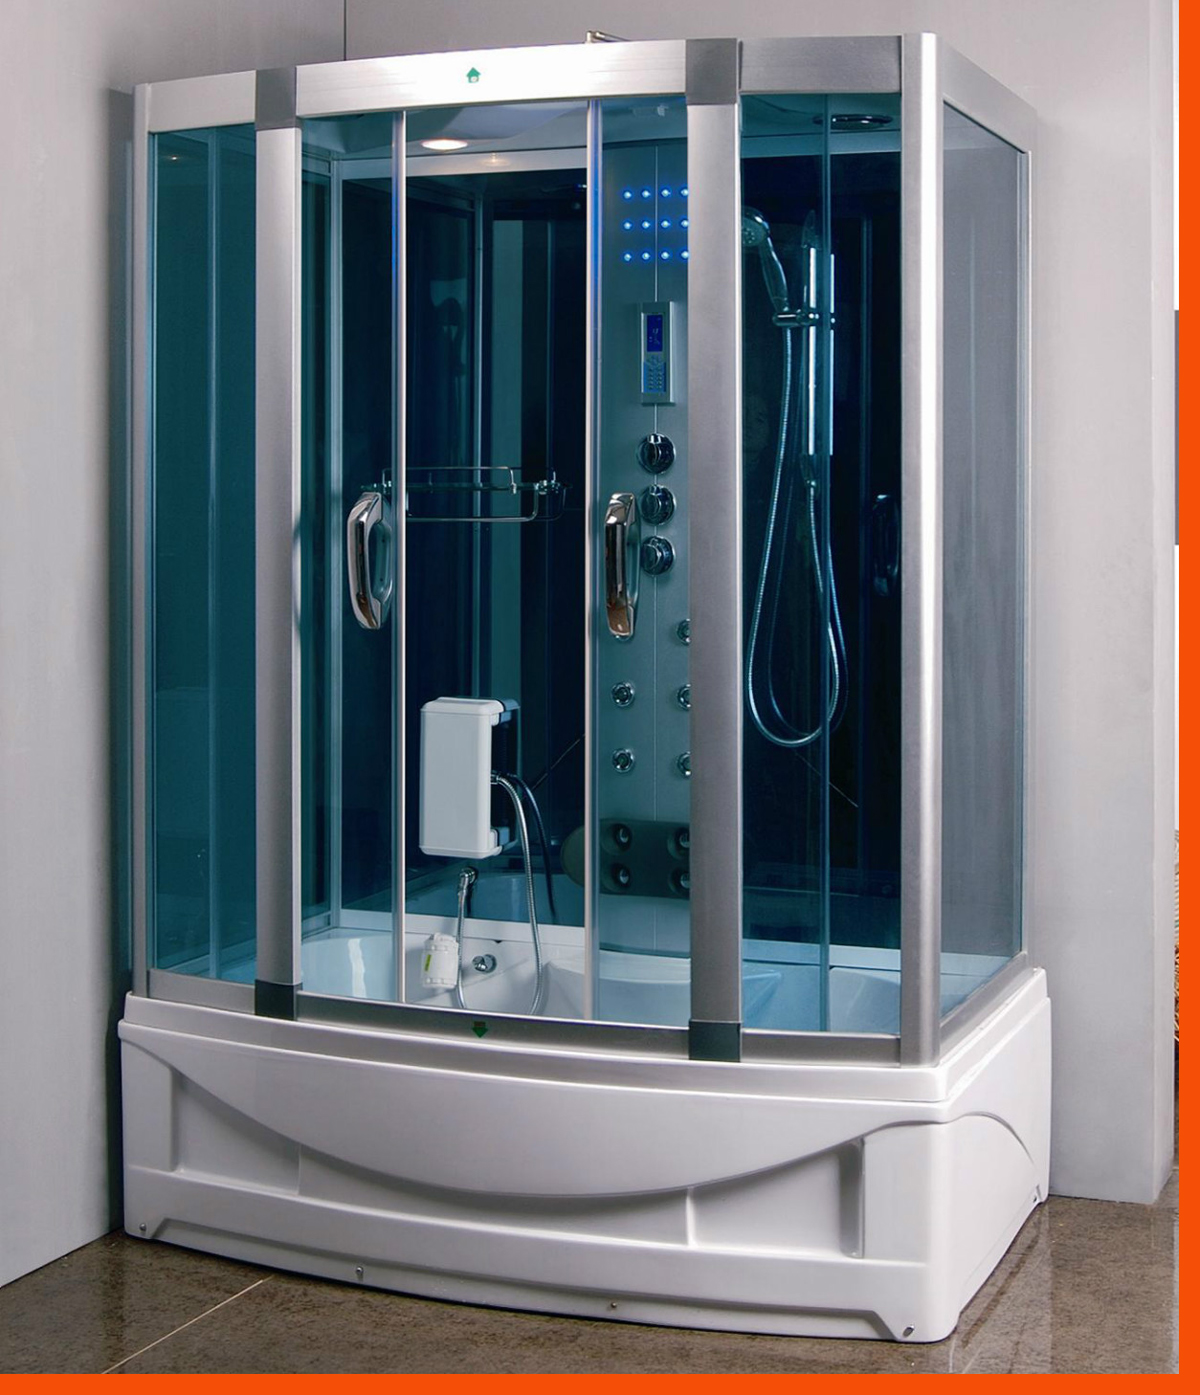 Steam Shower Room With deep Whirlpool Tub,BLUETOOTH. 9001 - BEST for ...